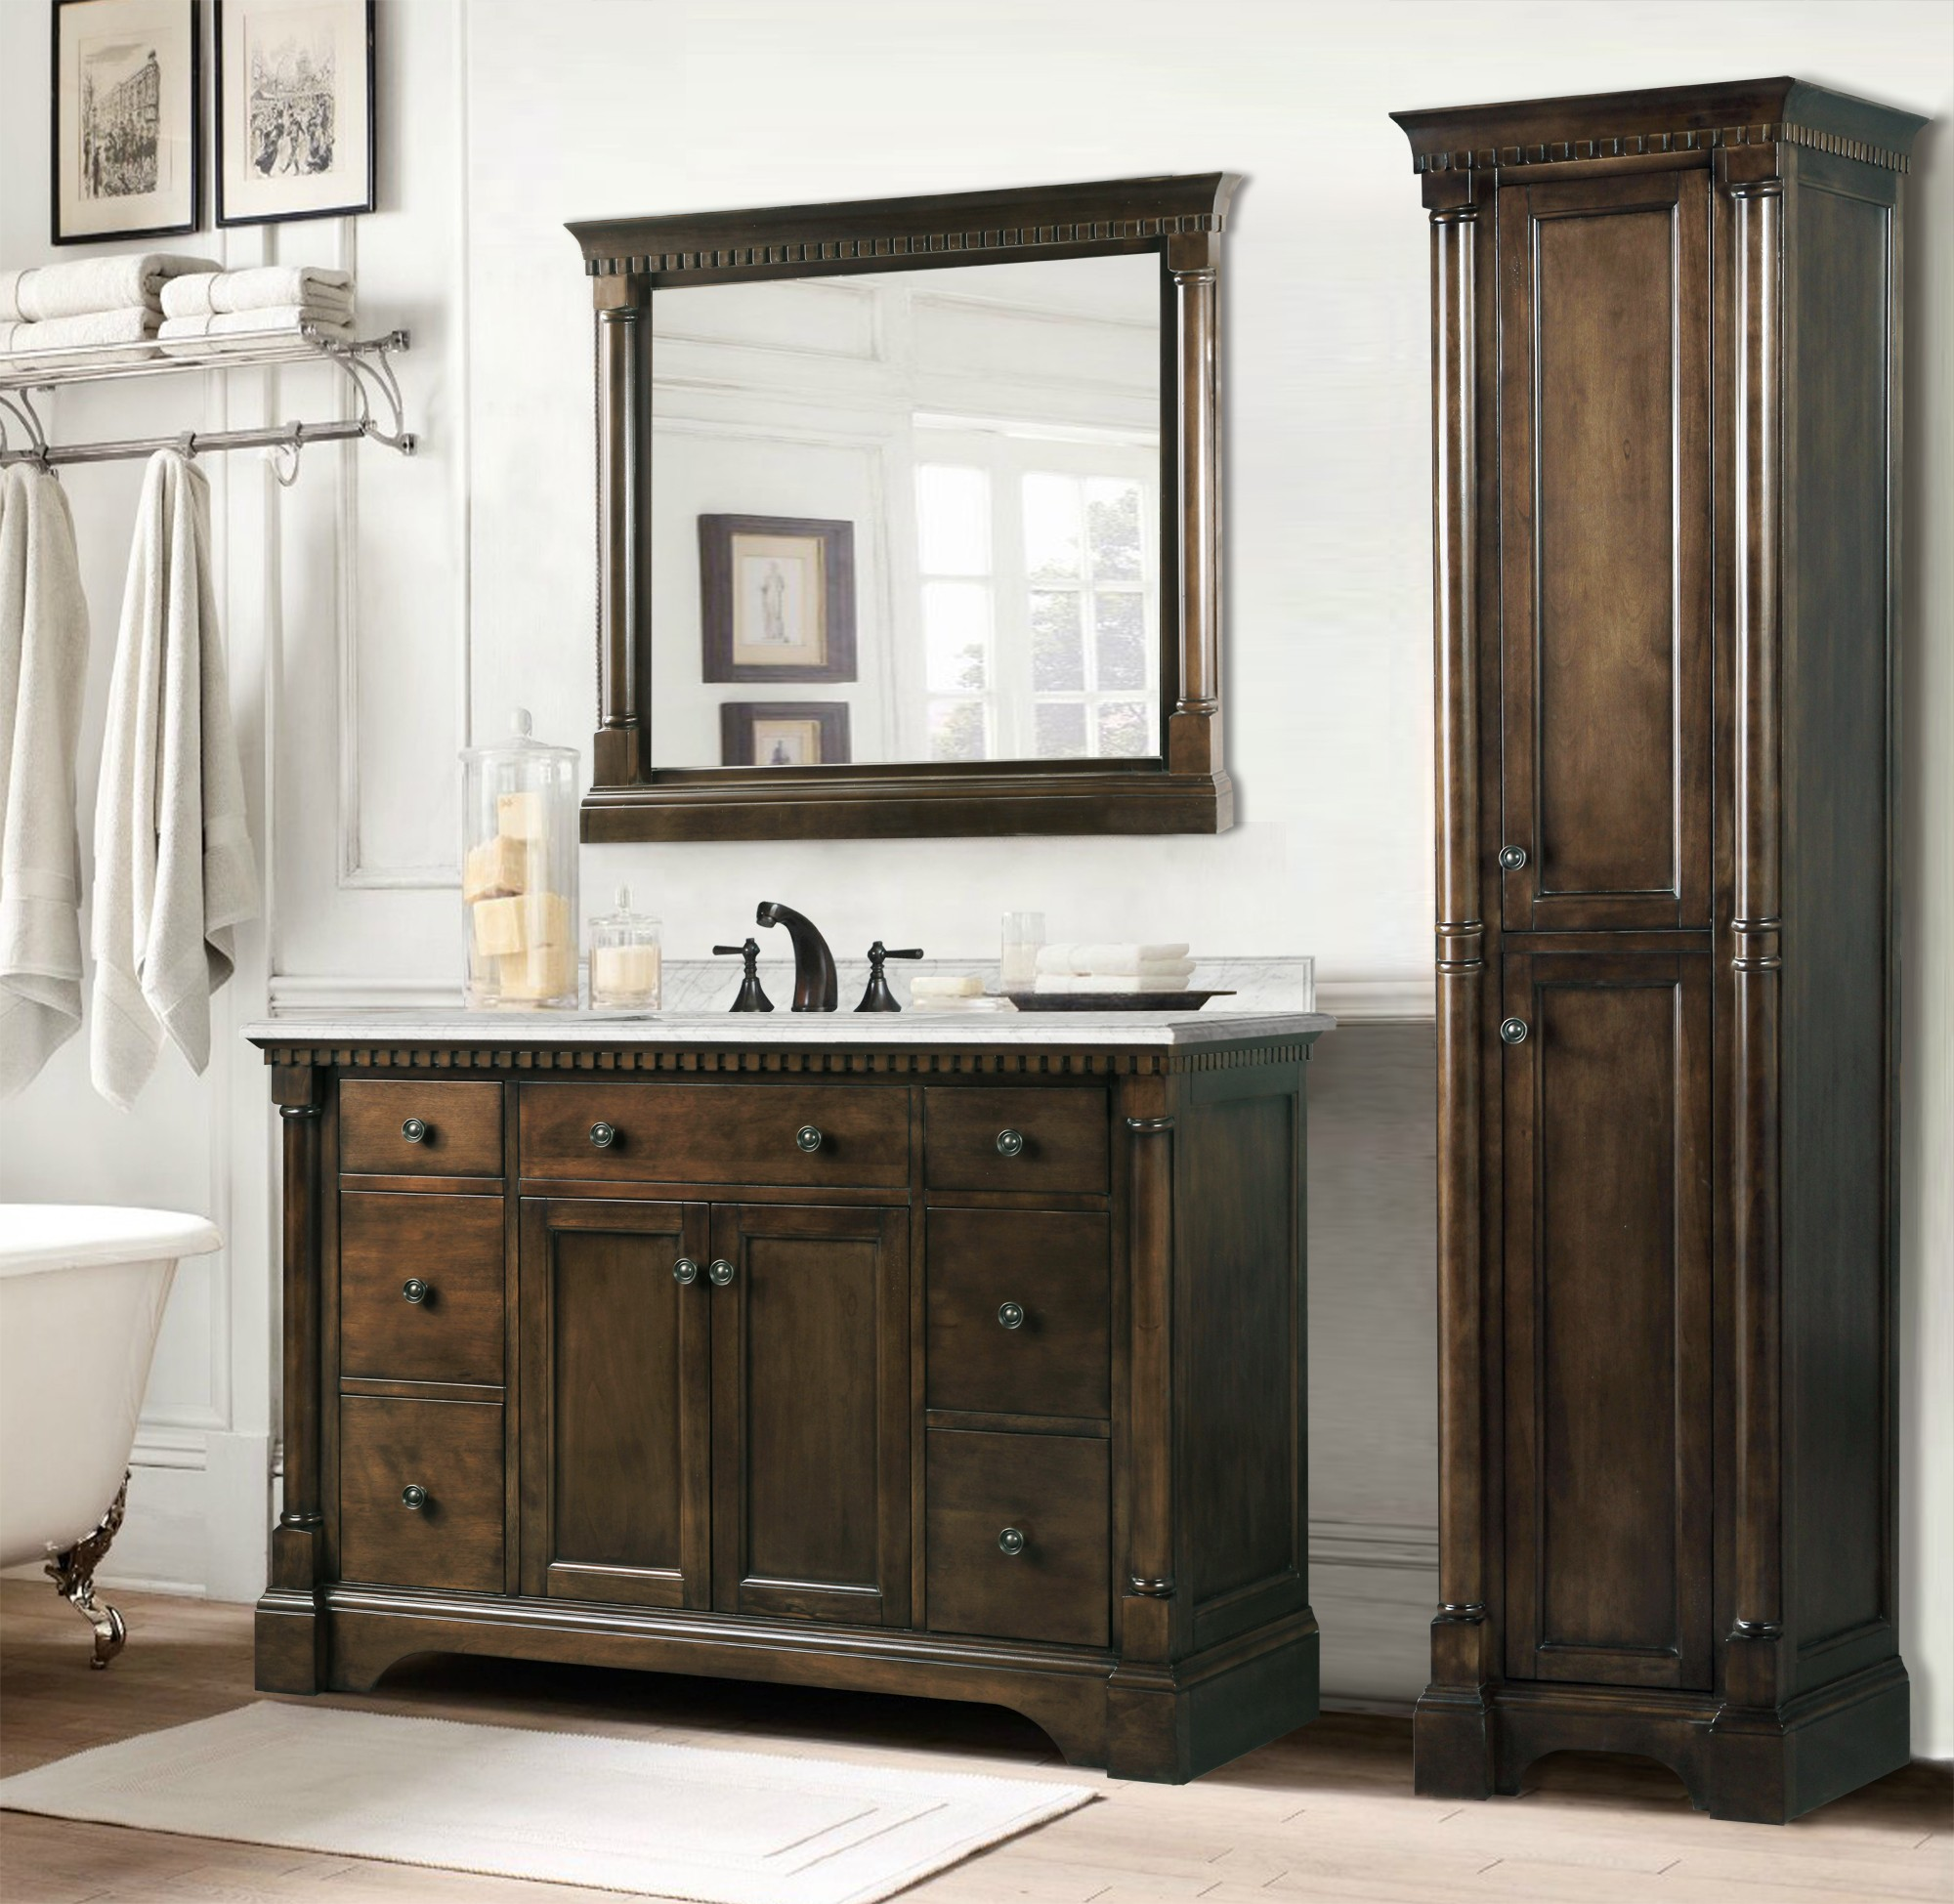 single sink bathroom vanity clearance top bathroom vanities clearance photo bathroom design 24121